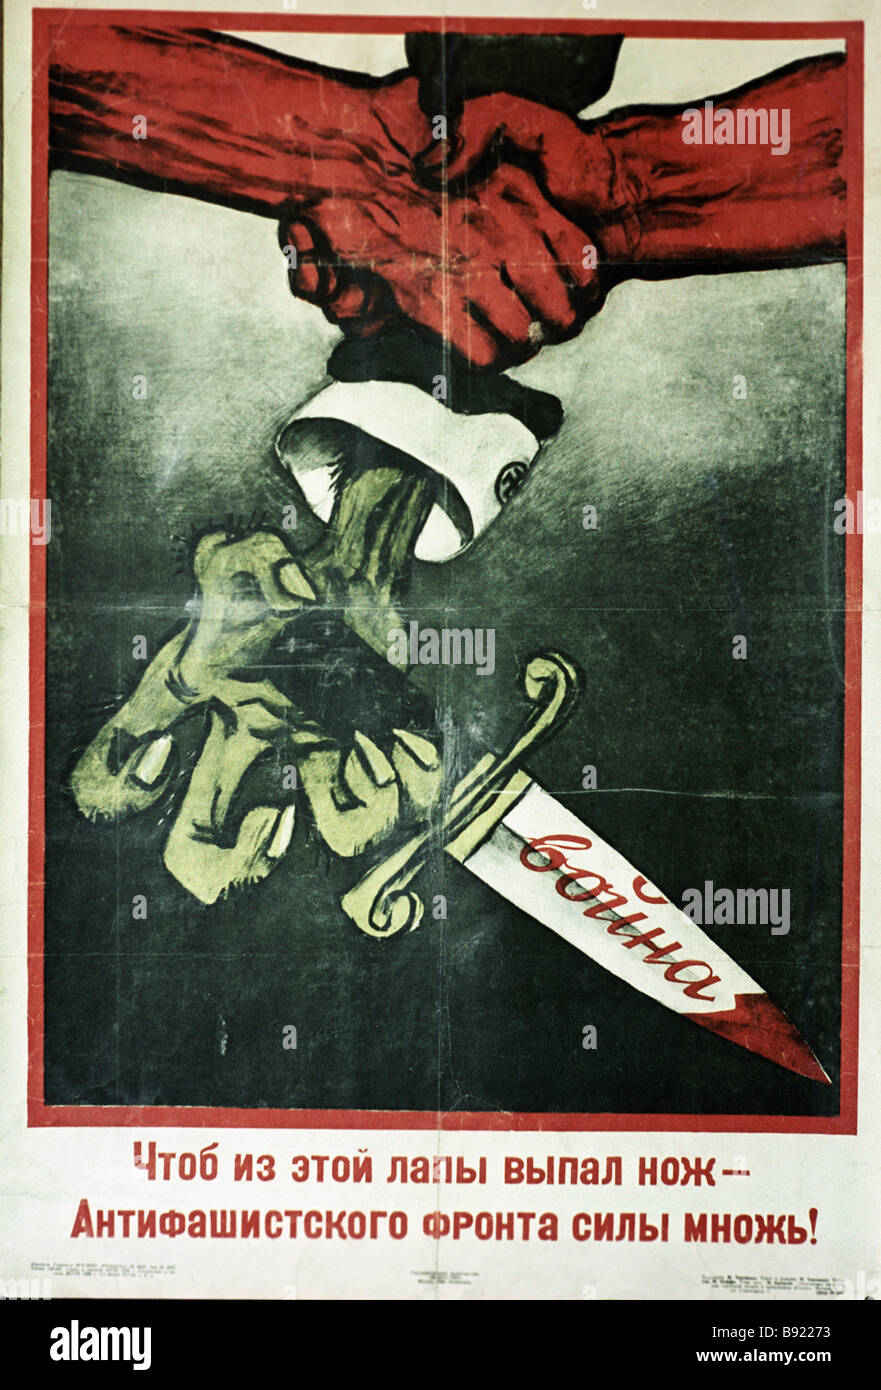 Reproduction of the poster by Mikhail Cheremnykh To make the dagger drop from that claw Antifascist forces must - Stock Image